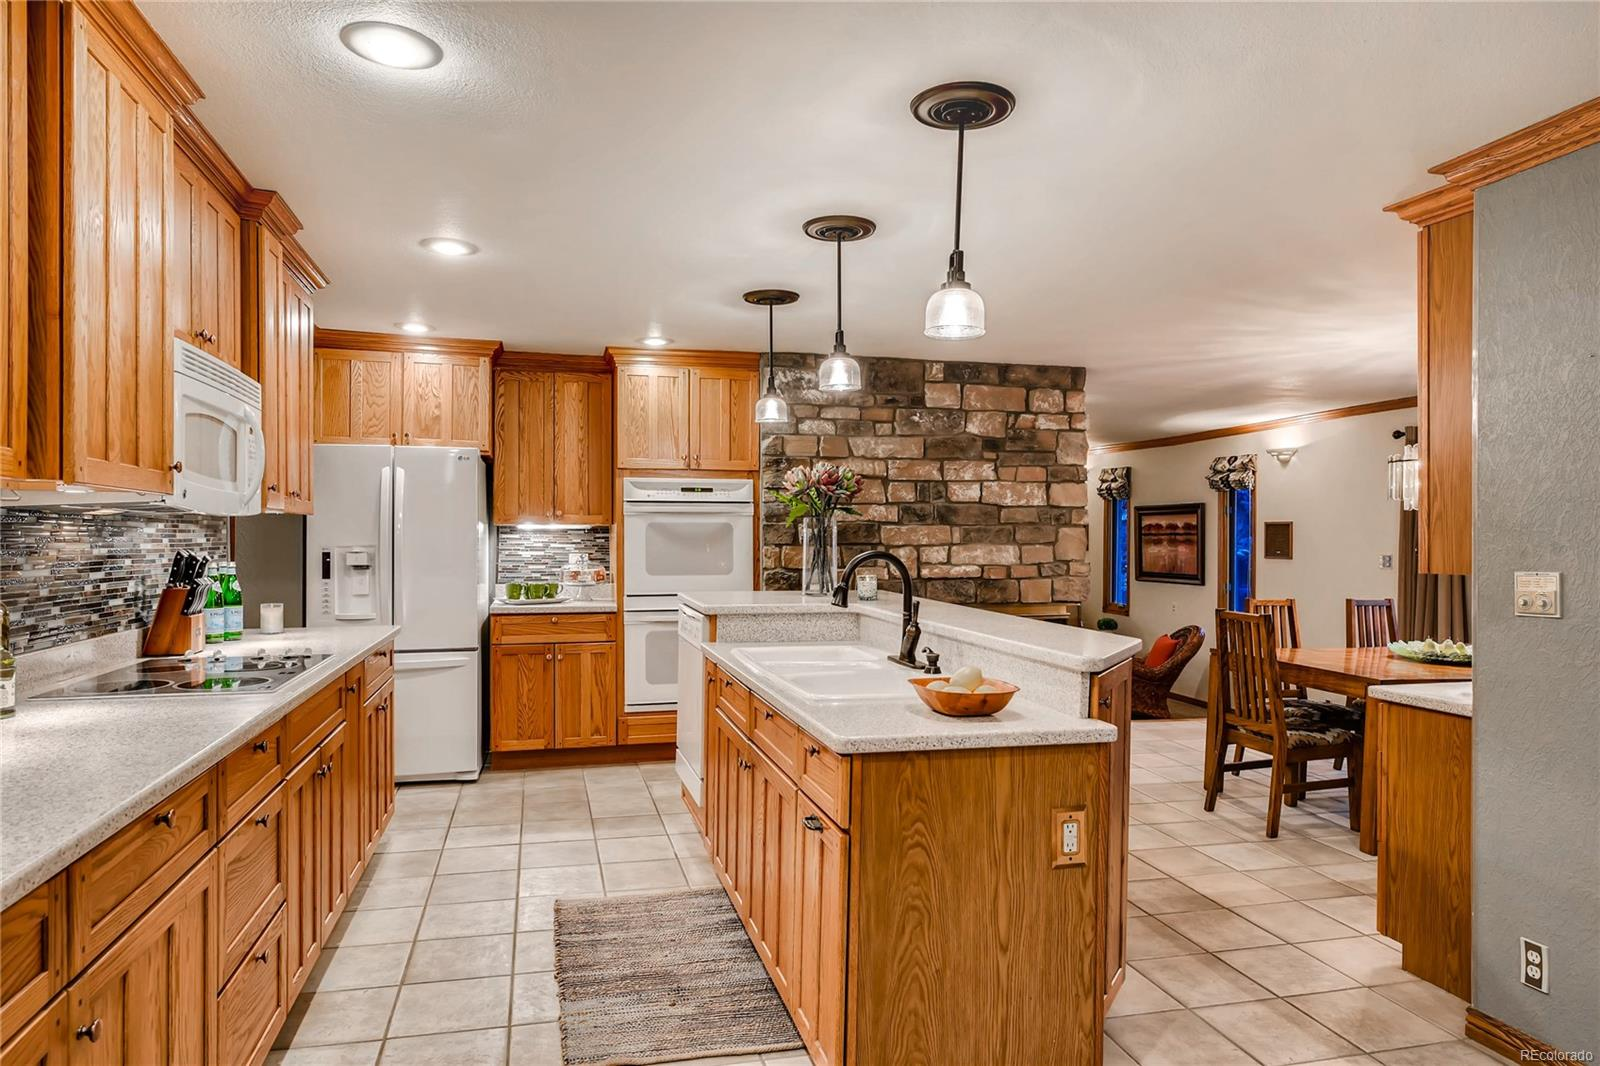 The Kitchen enjoys the shared fireplace with the Living Room and Dining Area.